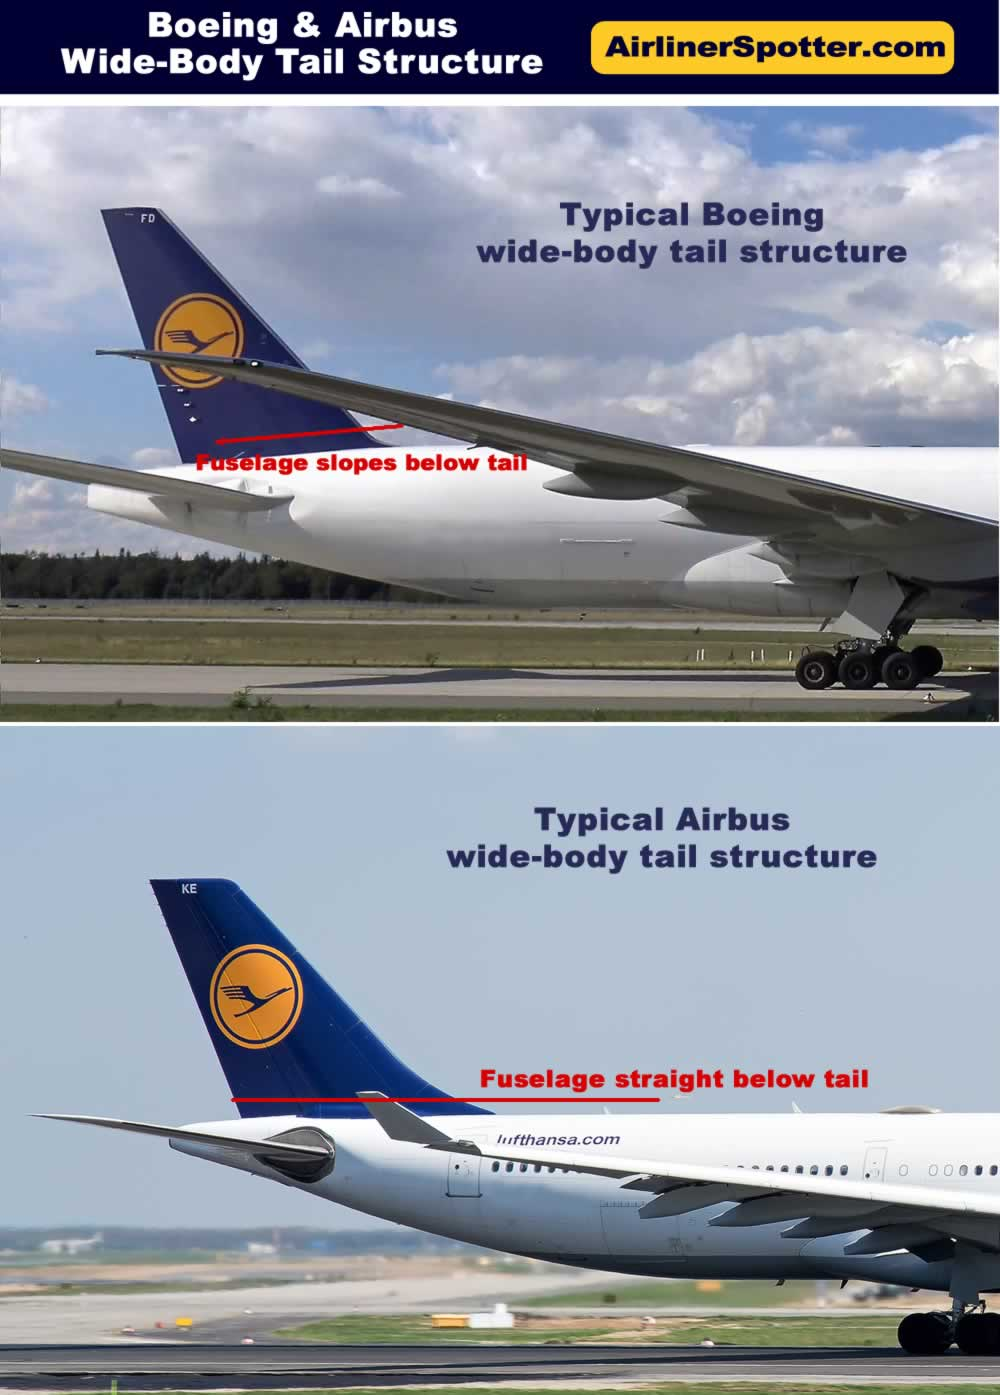 Comparison of typical Boeing wide-body tail structure (top) compared with a typical Airbus structure (bottom) which has more of a straight alignment across the bottom of the tail